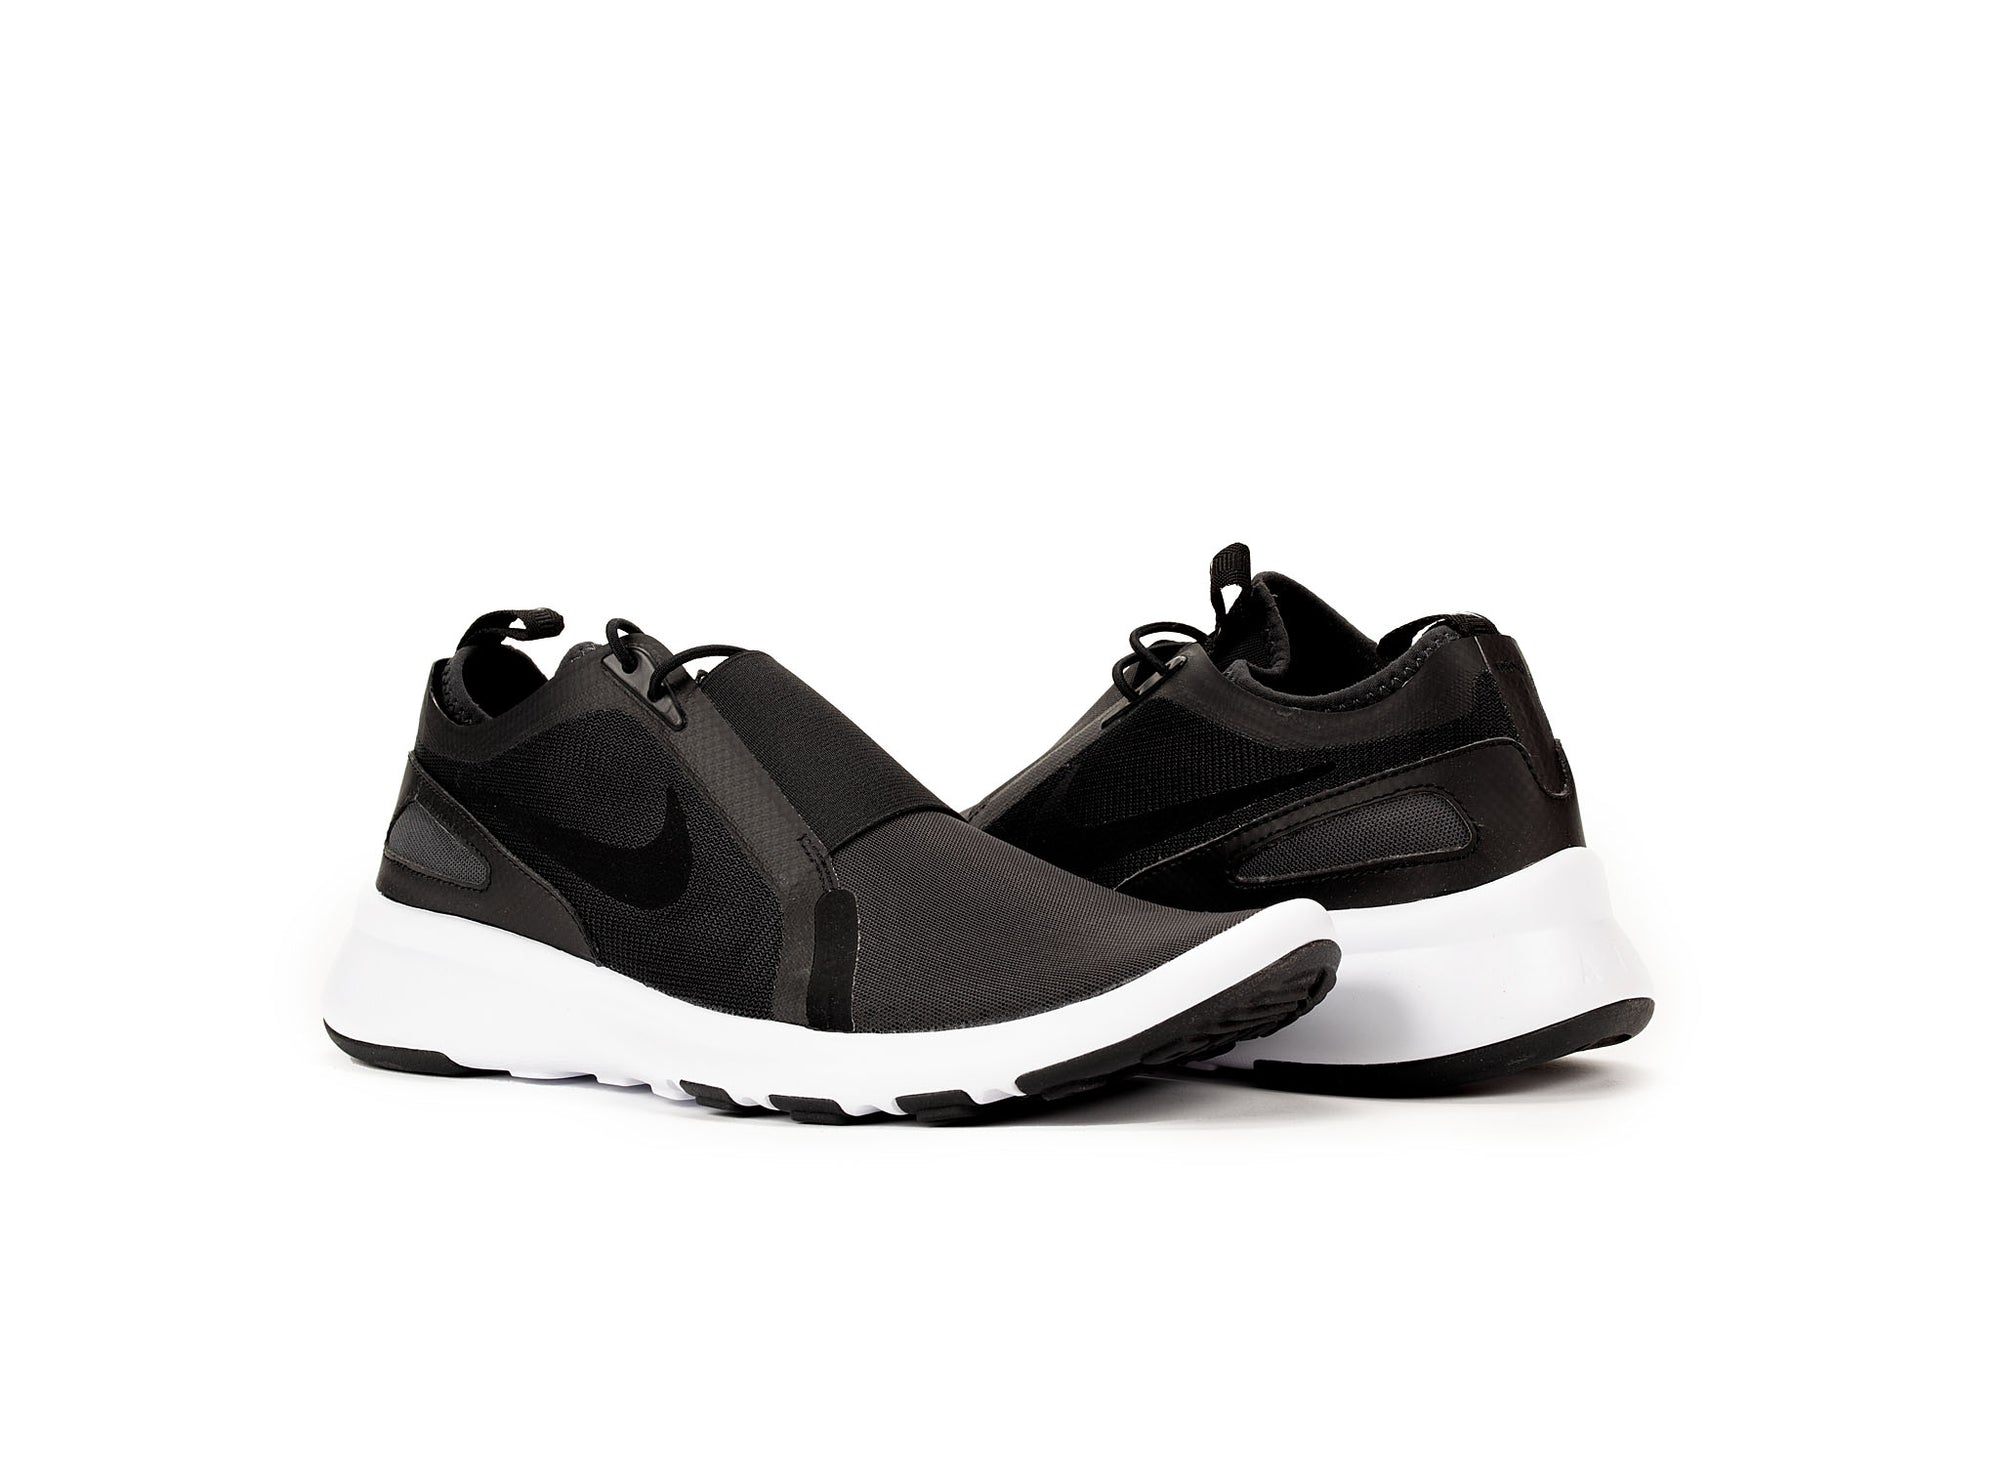 1781a3dbf3ab NIKE CURRENT SLIP ON - Oneness Boutique